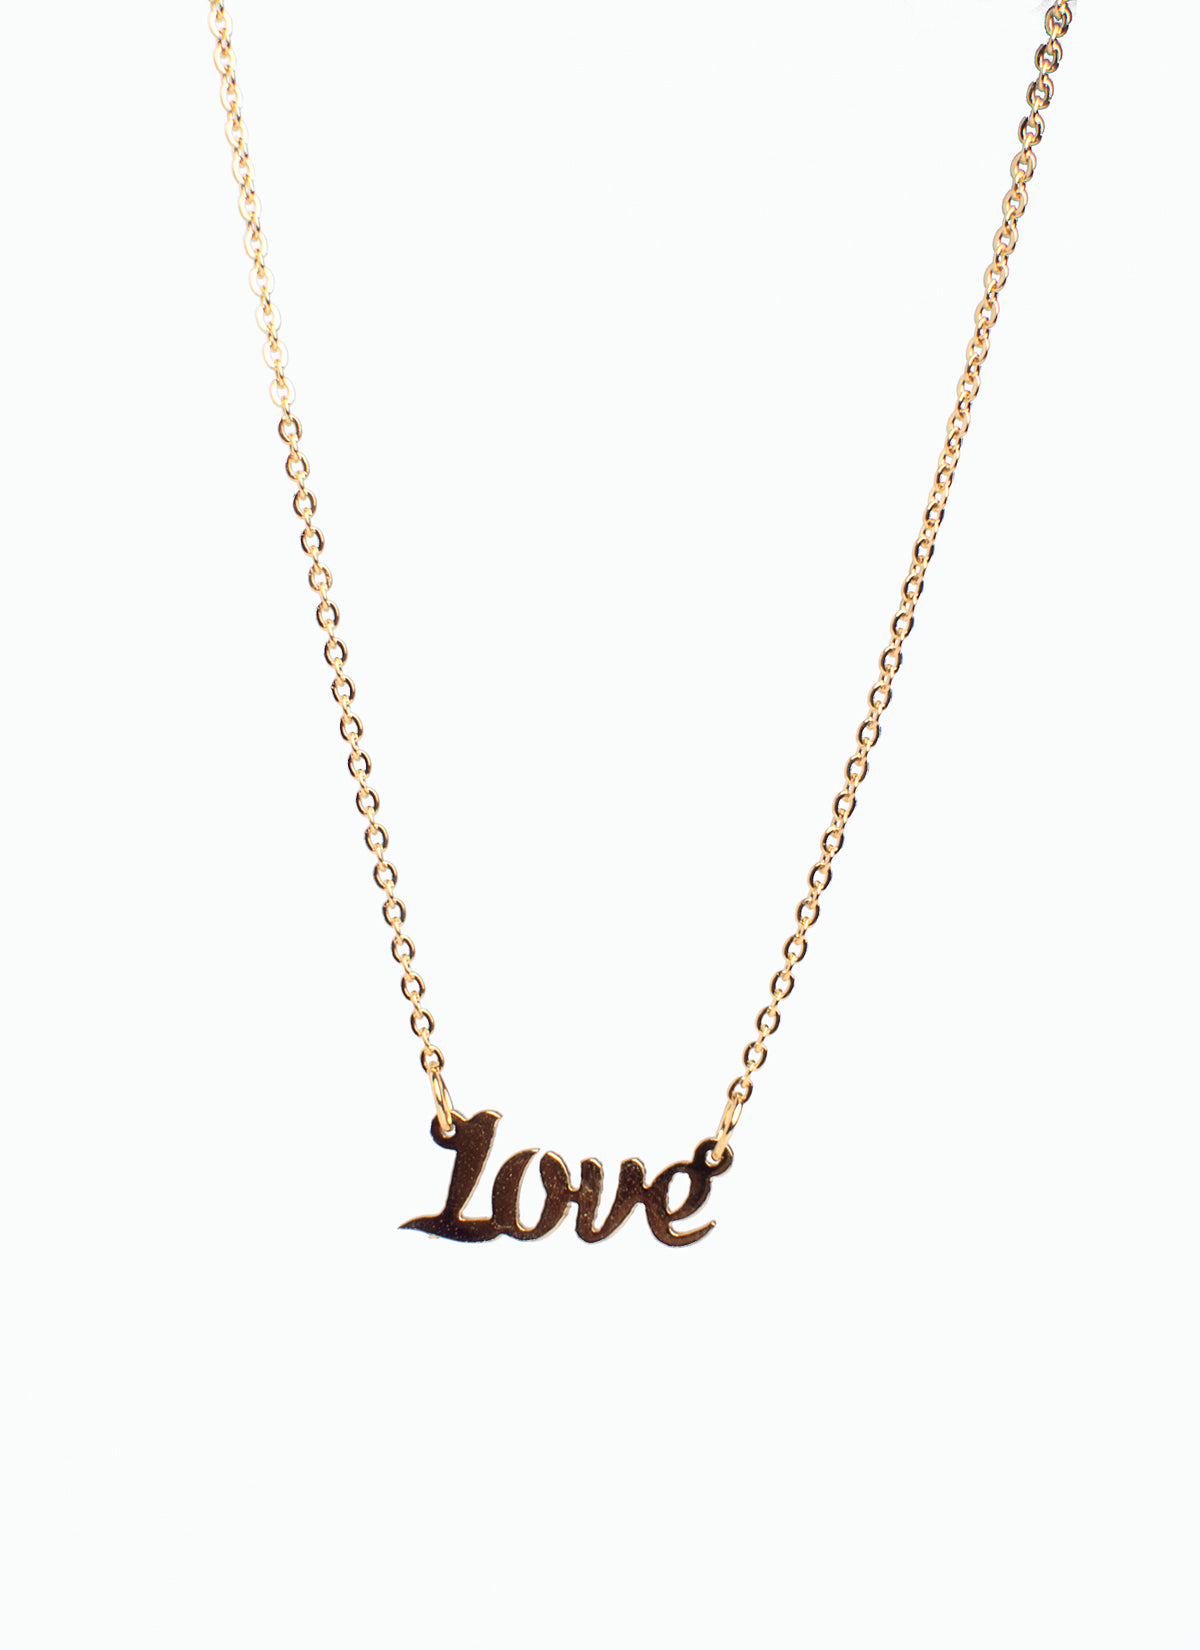 I AM-LOVE necklace (TF) - ebrook lael